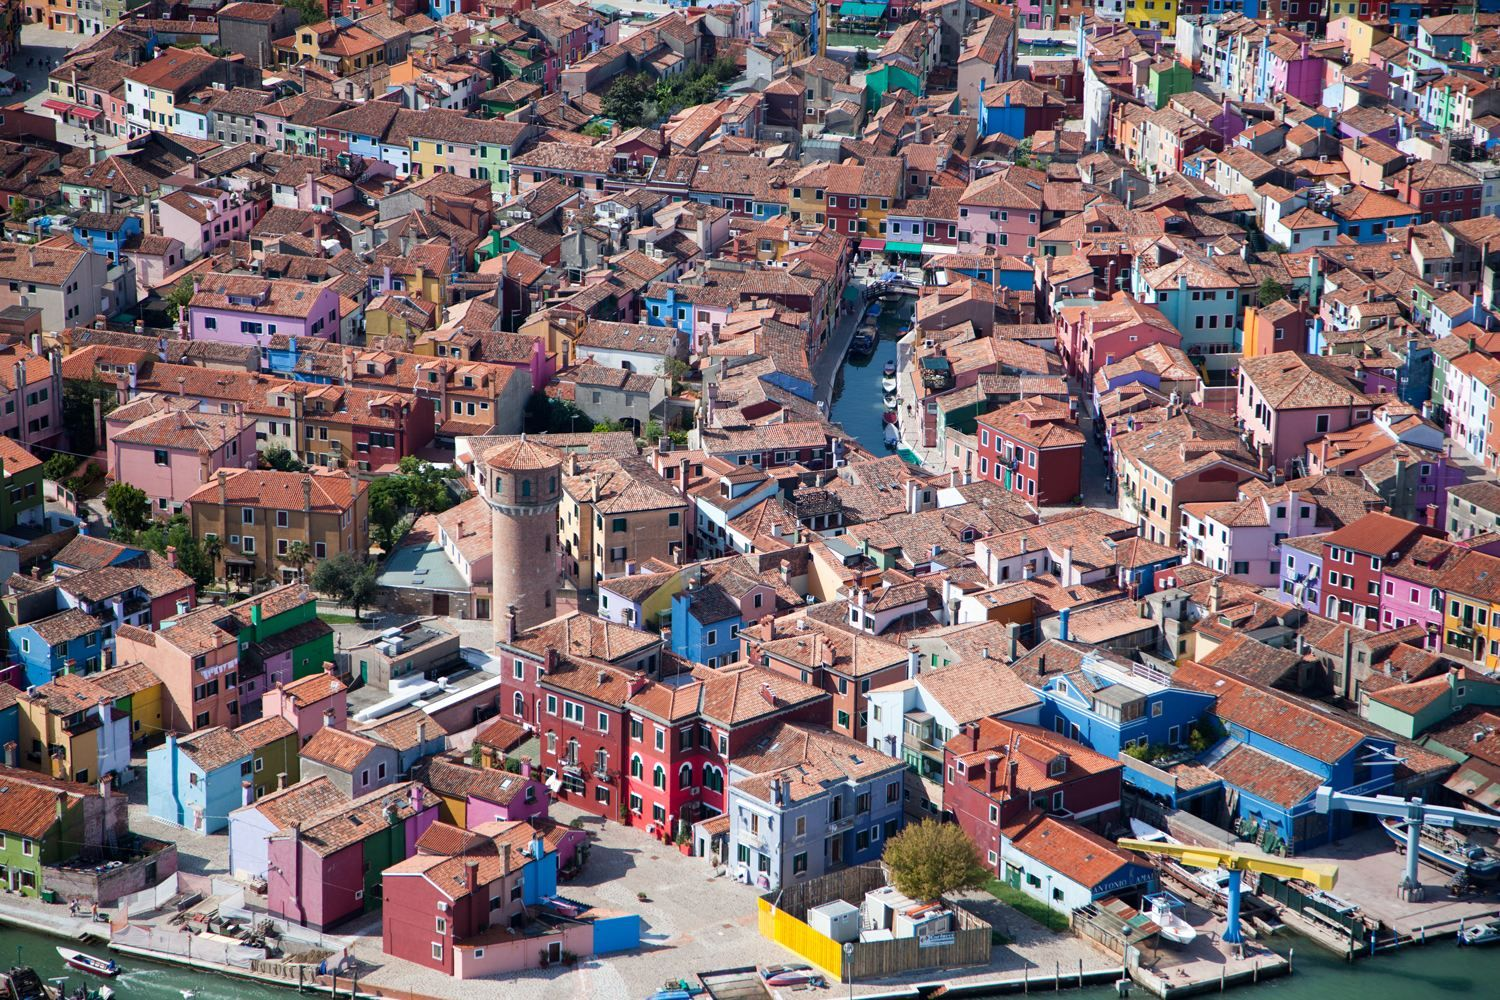 'Brightly Painted Houses' in Burano, Italy, 2010